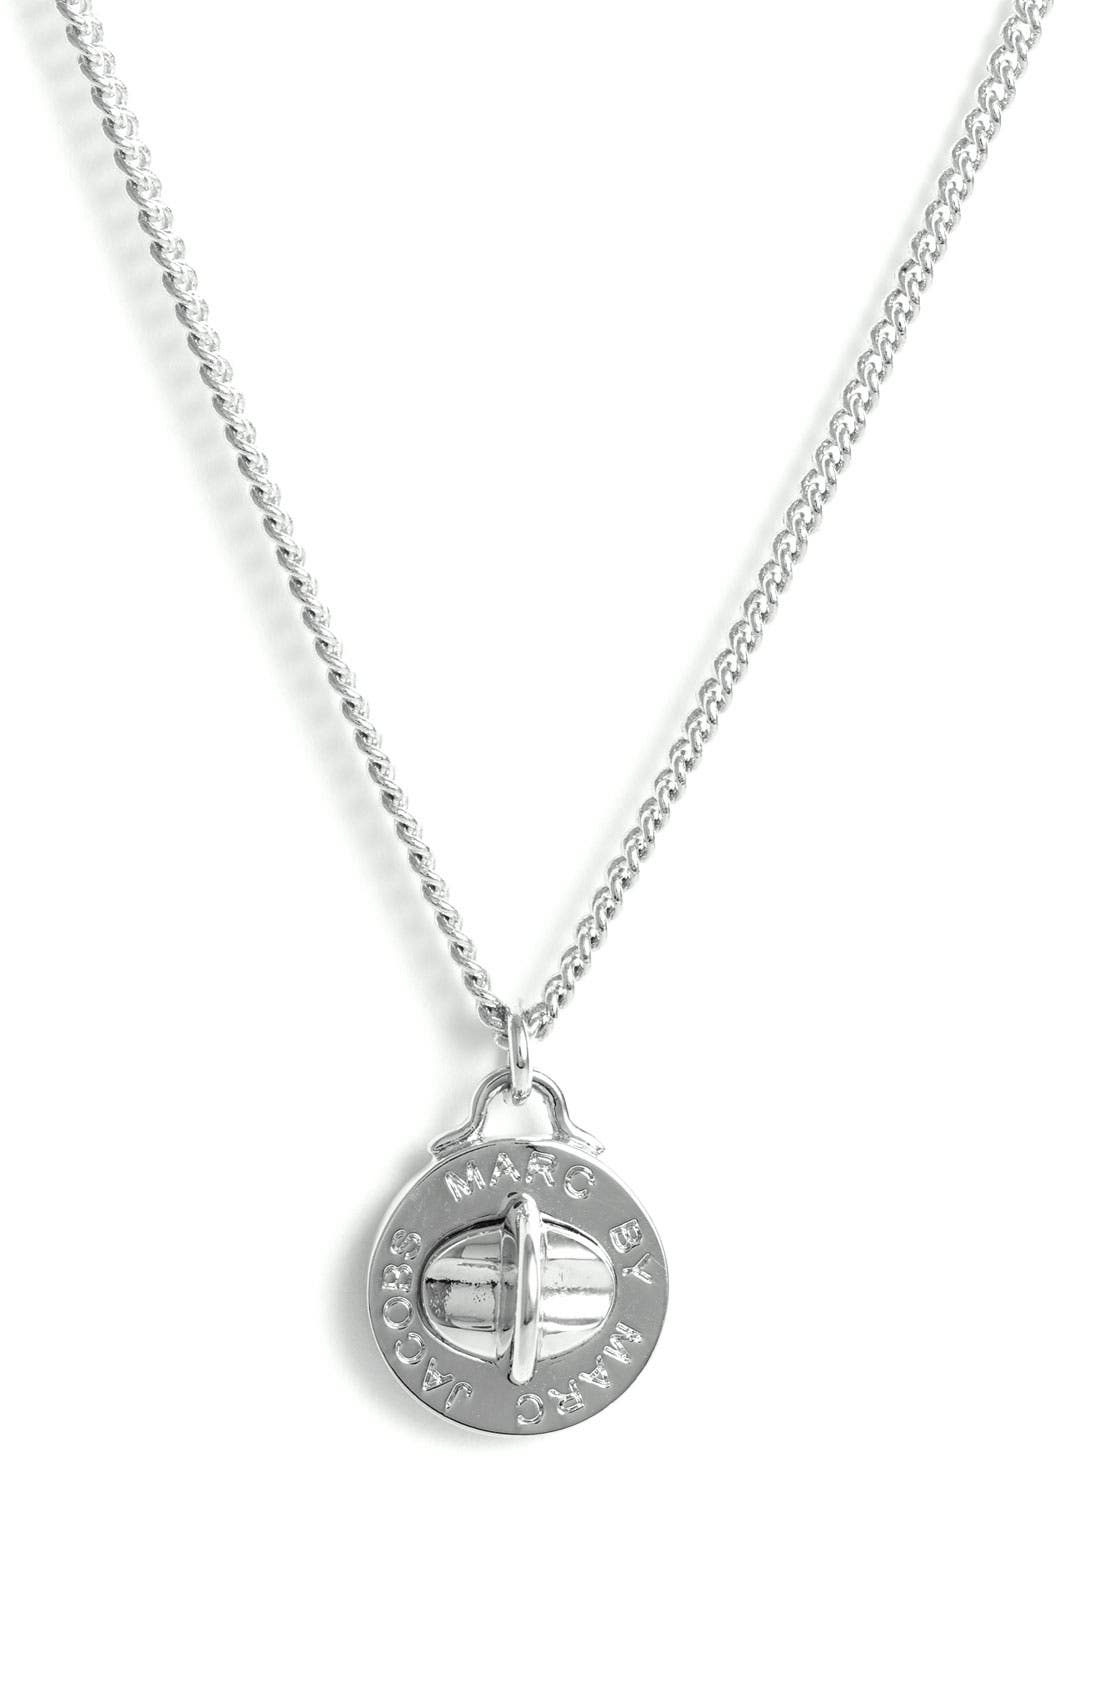 Alternate Image 1 Selected - MARC BY MARC JACOBS 'Turnlock' Pendant Necklace